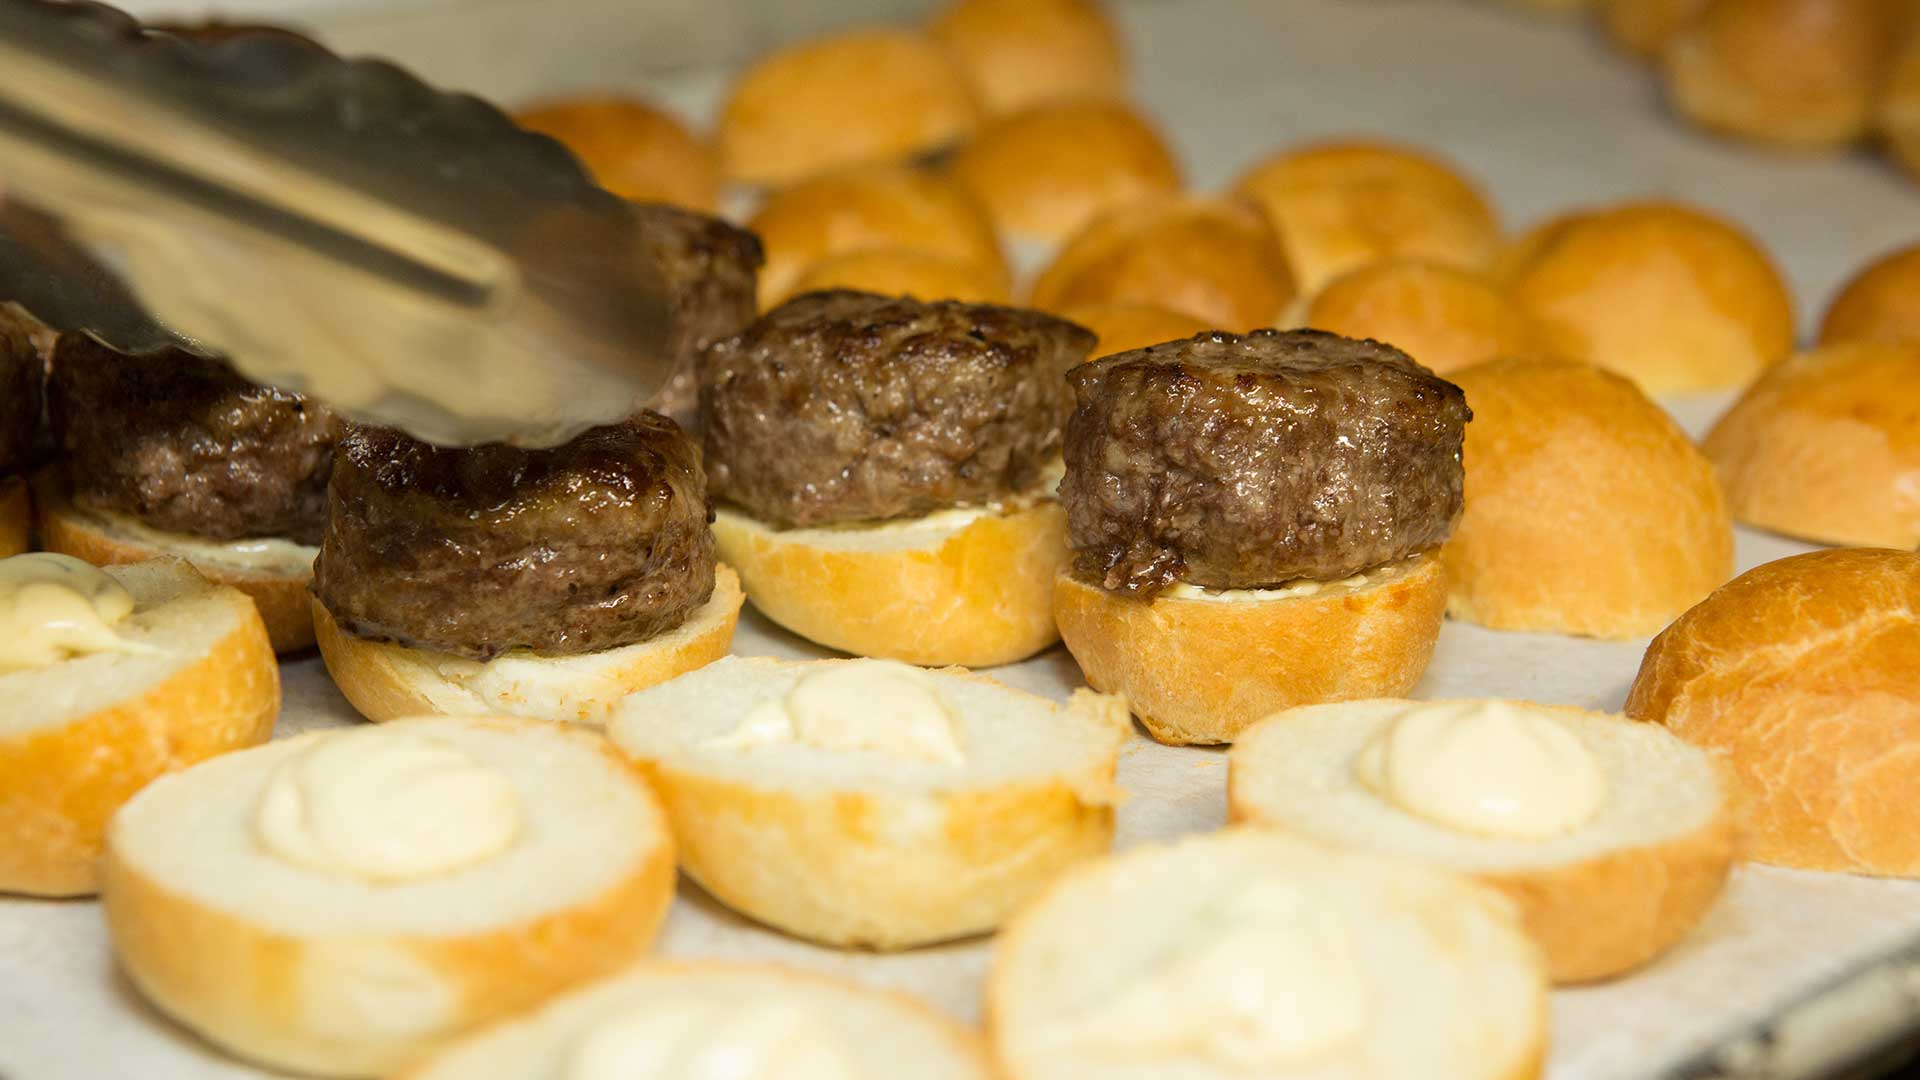 Wedding Catering Beef Sliders on Brioche Bun